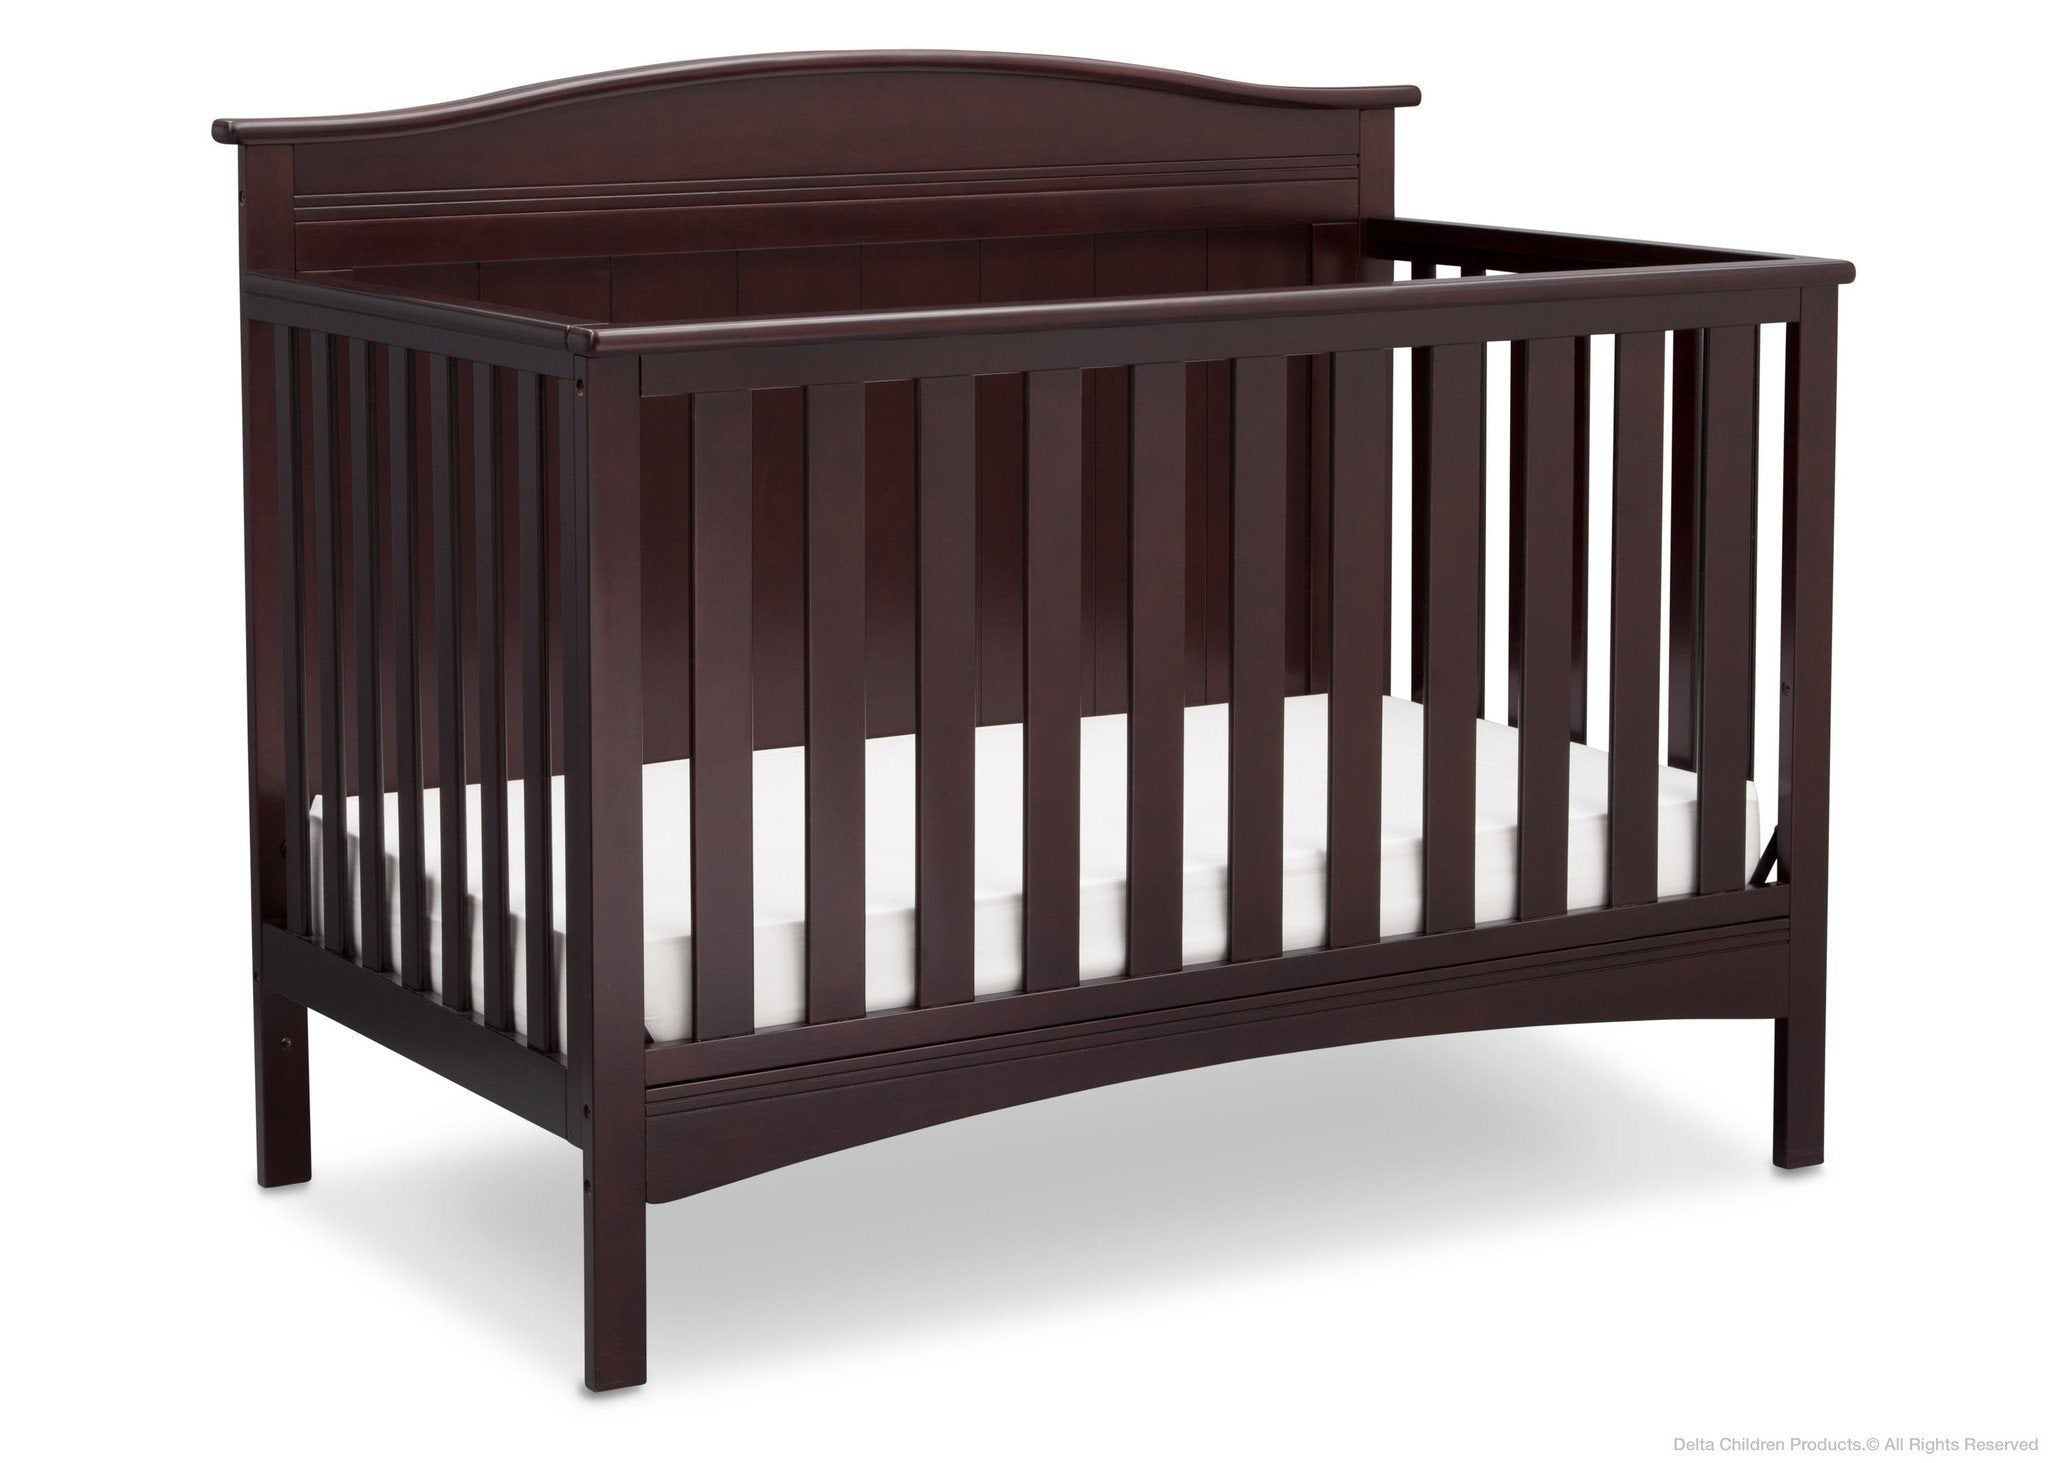 Delta Children Dark Chocolate (207) Bennett 4-in-1 Crib Side View c3c